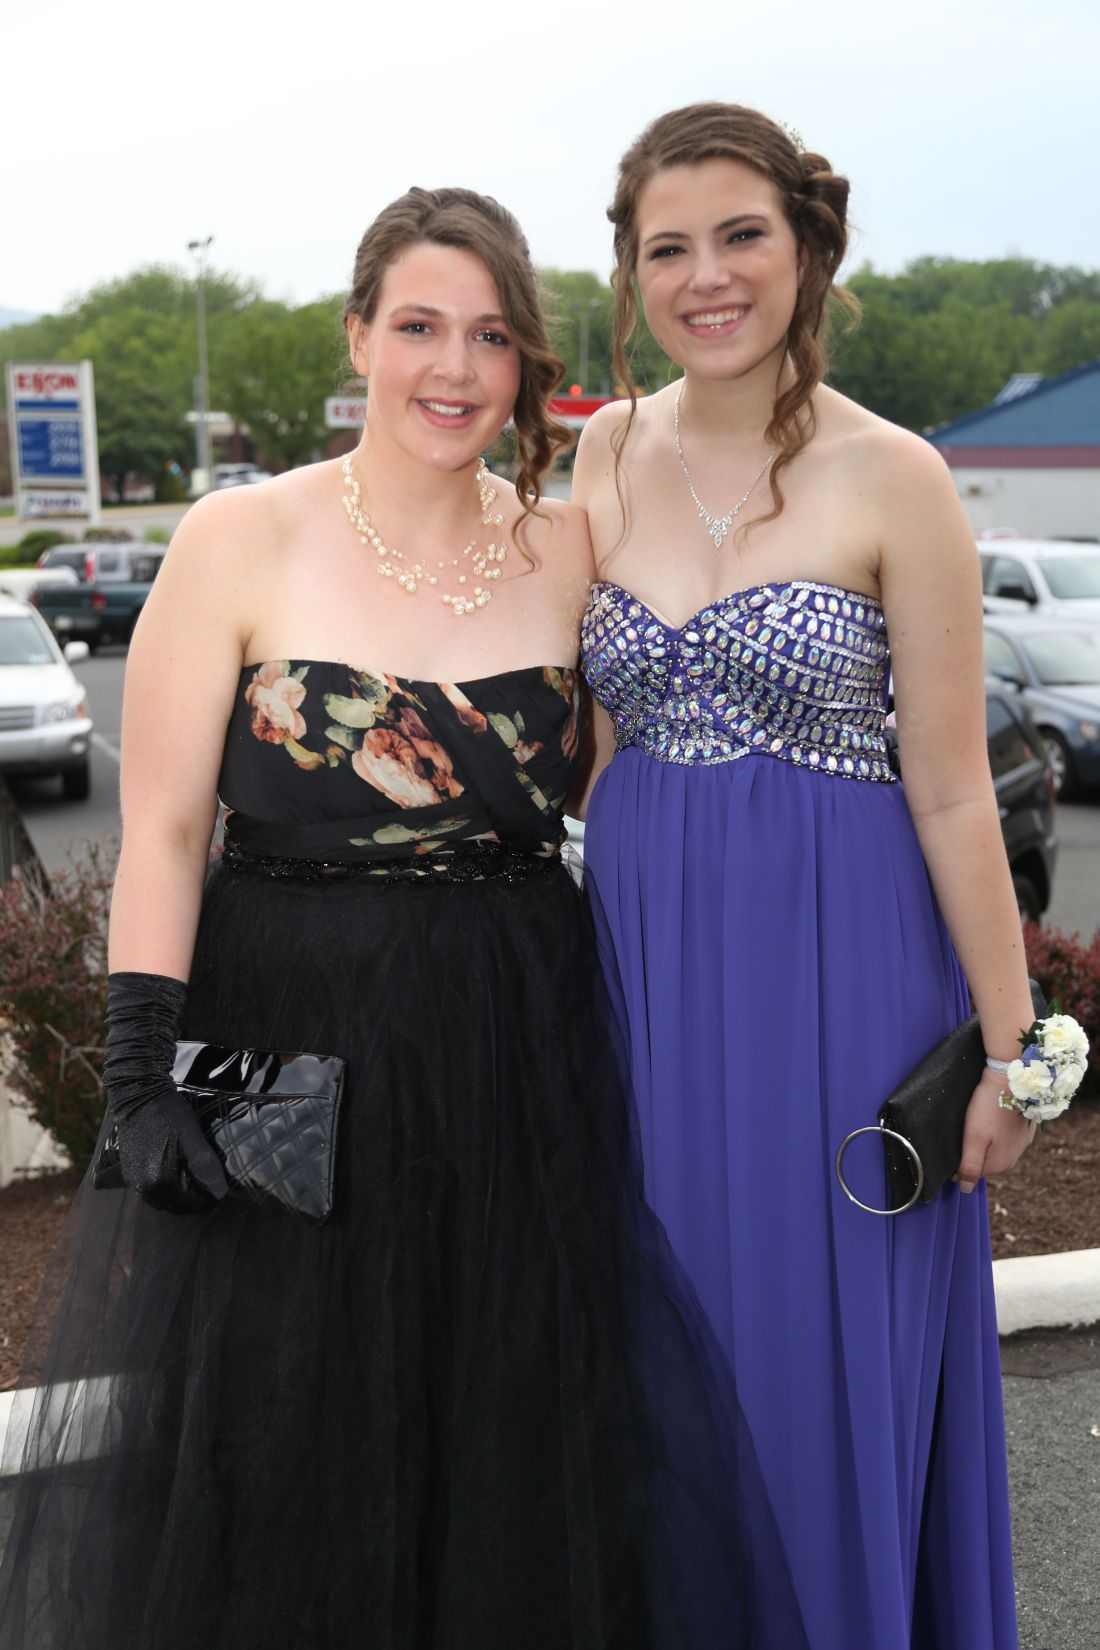 School Formal Letter%0A Ephrata and Agora Cyber School students arrive for prom        Local News    lancasteronline com